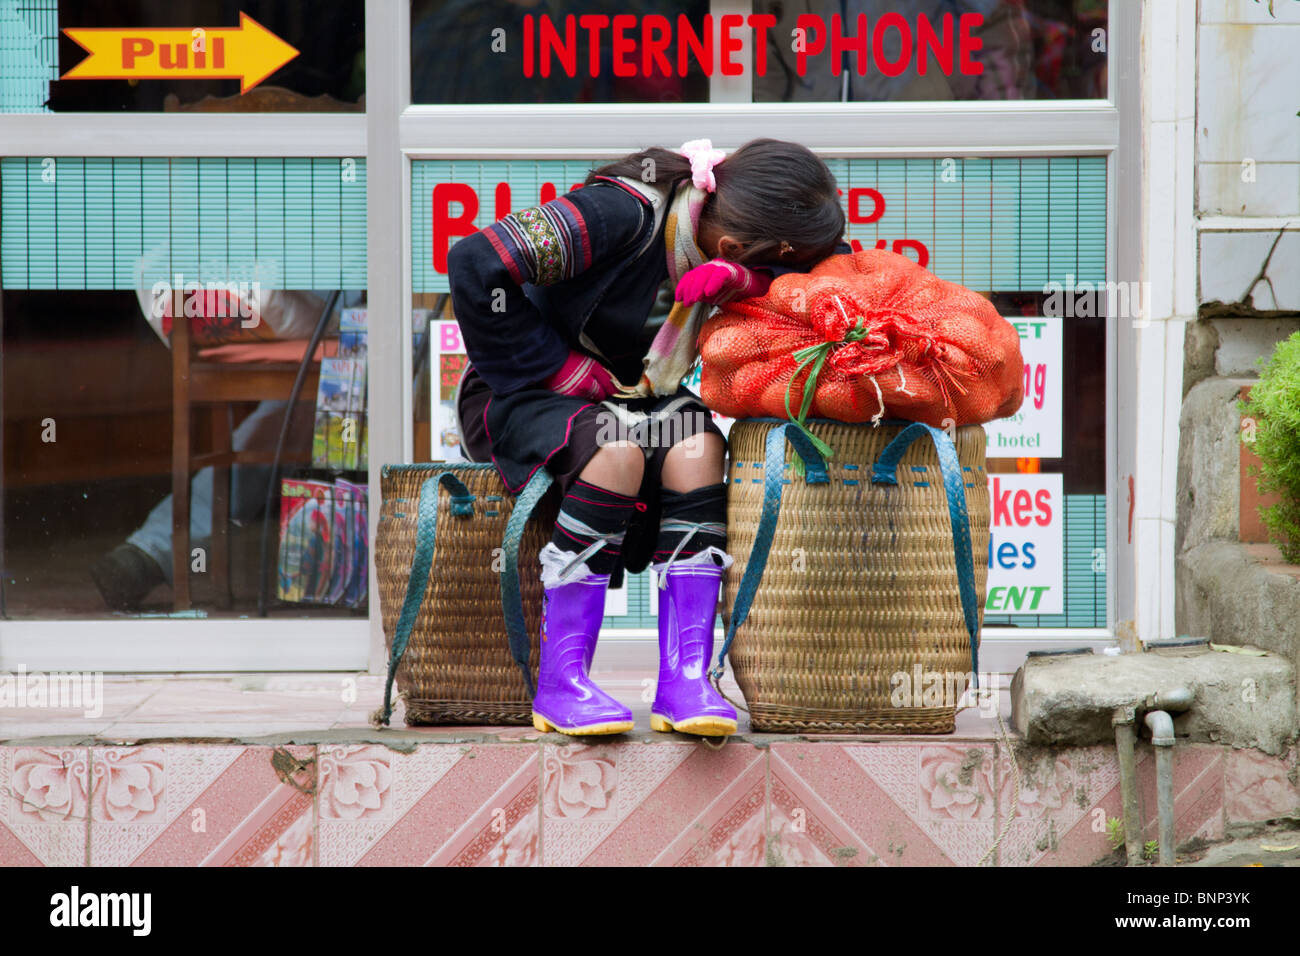 A black Hmong girl rests on her purchases in front of an Internet café on the street in Sapa - Stock Image